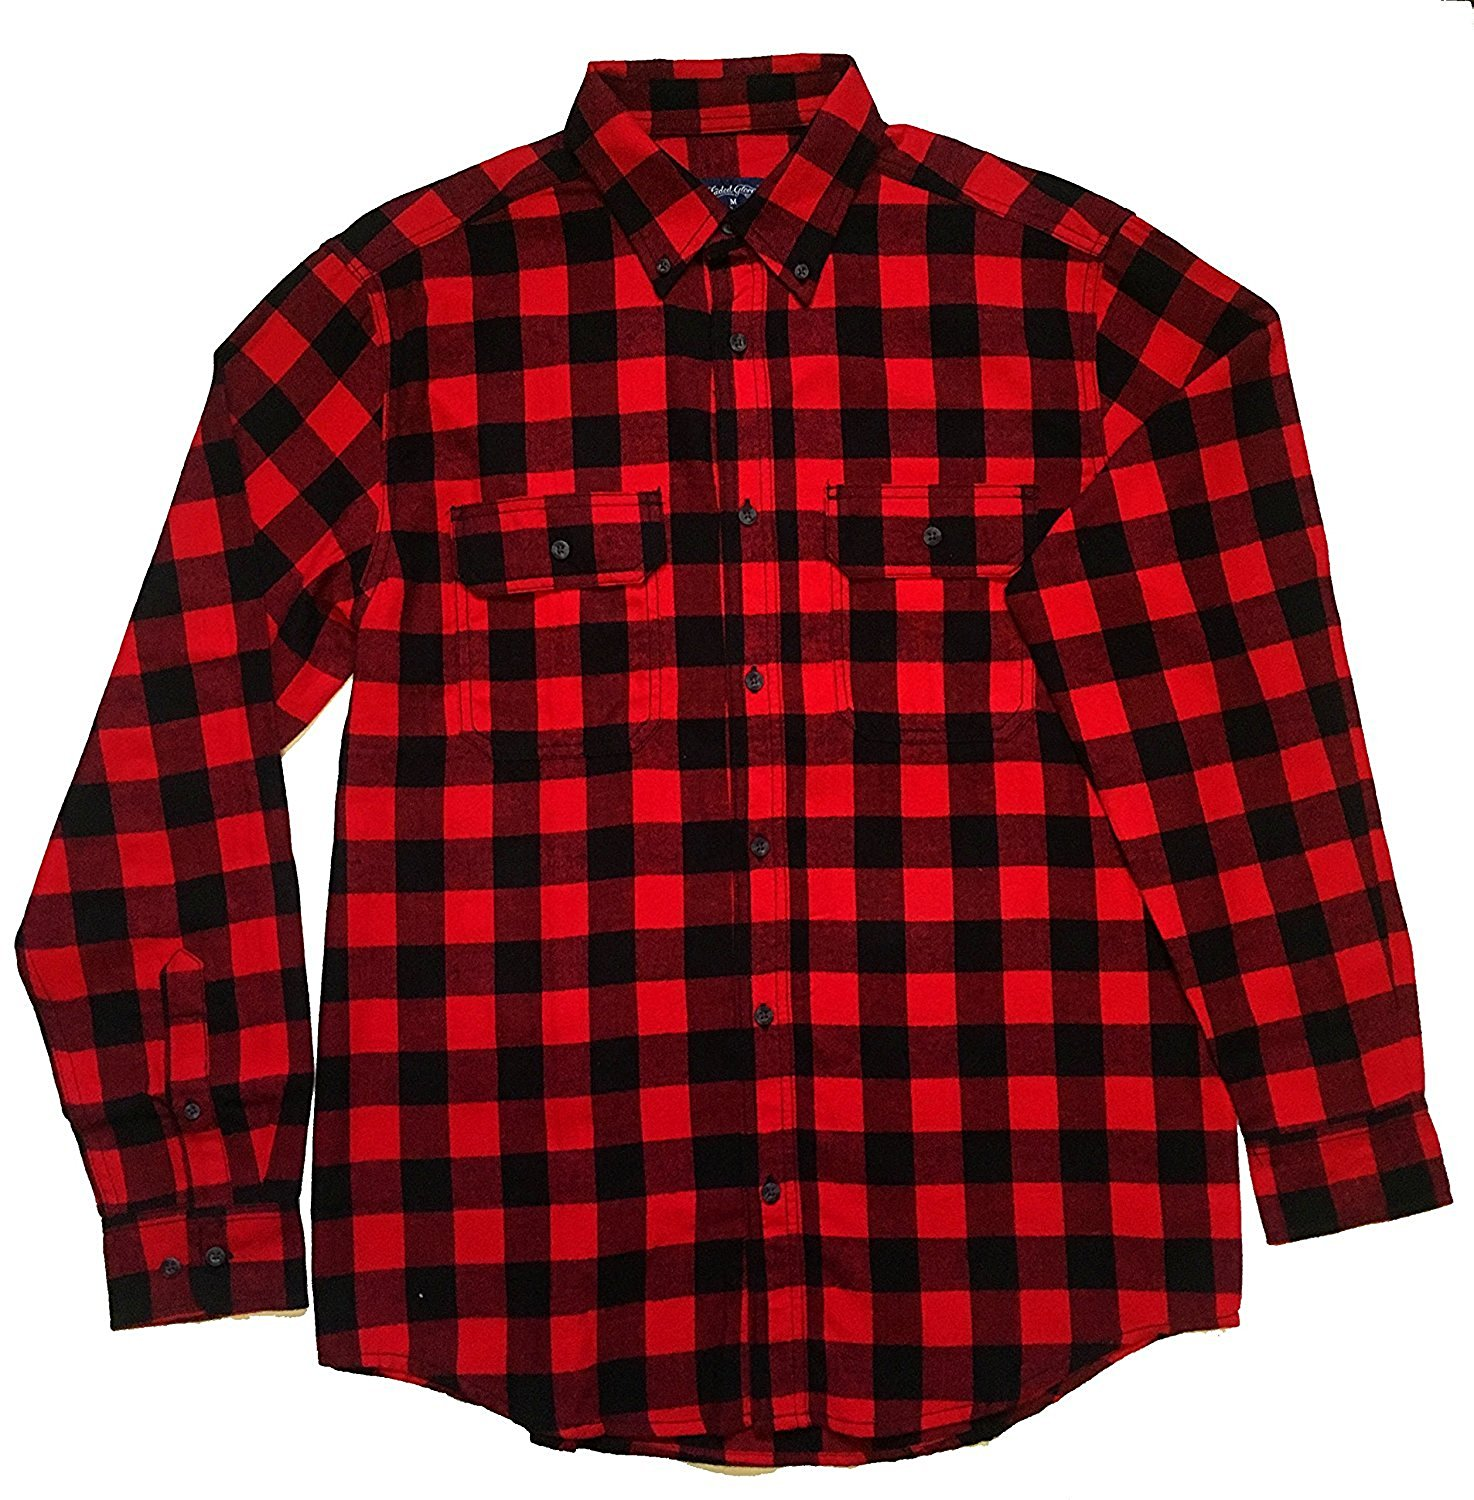 ddcd9d1c5a969 Get Quotations · Faded Glory Classic Yarn Dyed Plaid Men s Cotton Flannel  Shirt